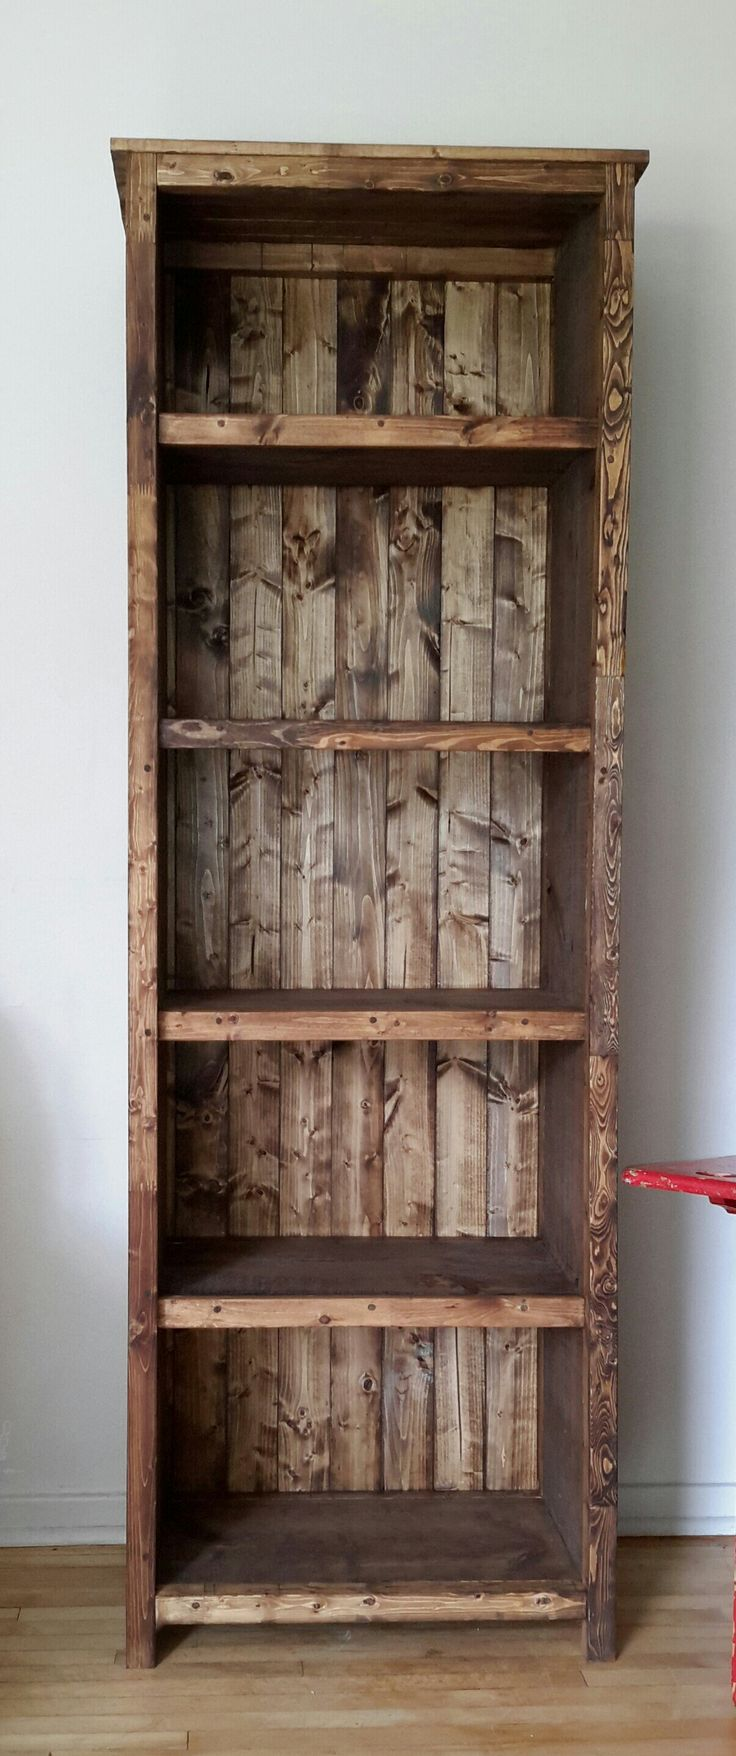 Kentwood Bookshelf: DIY Home Projects from Ana White.